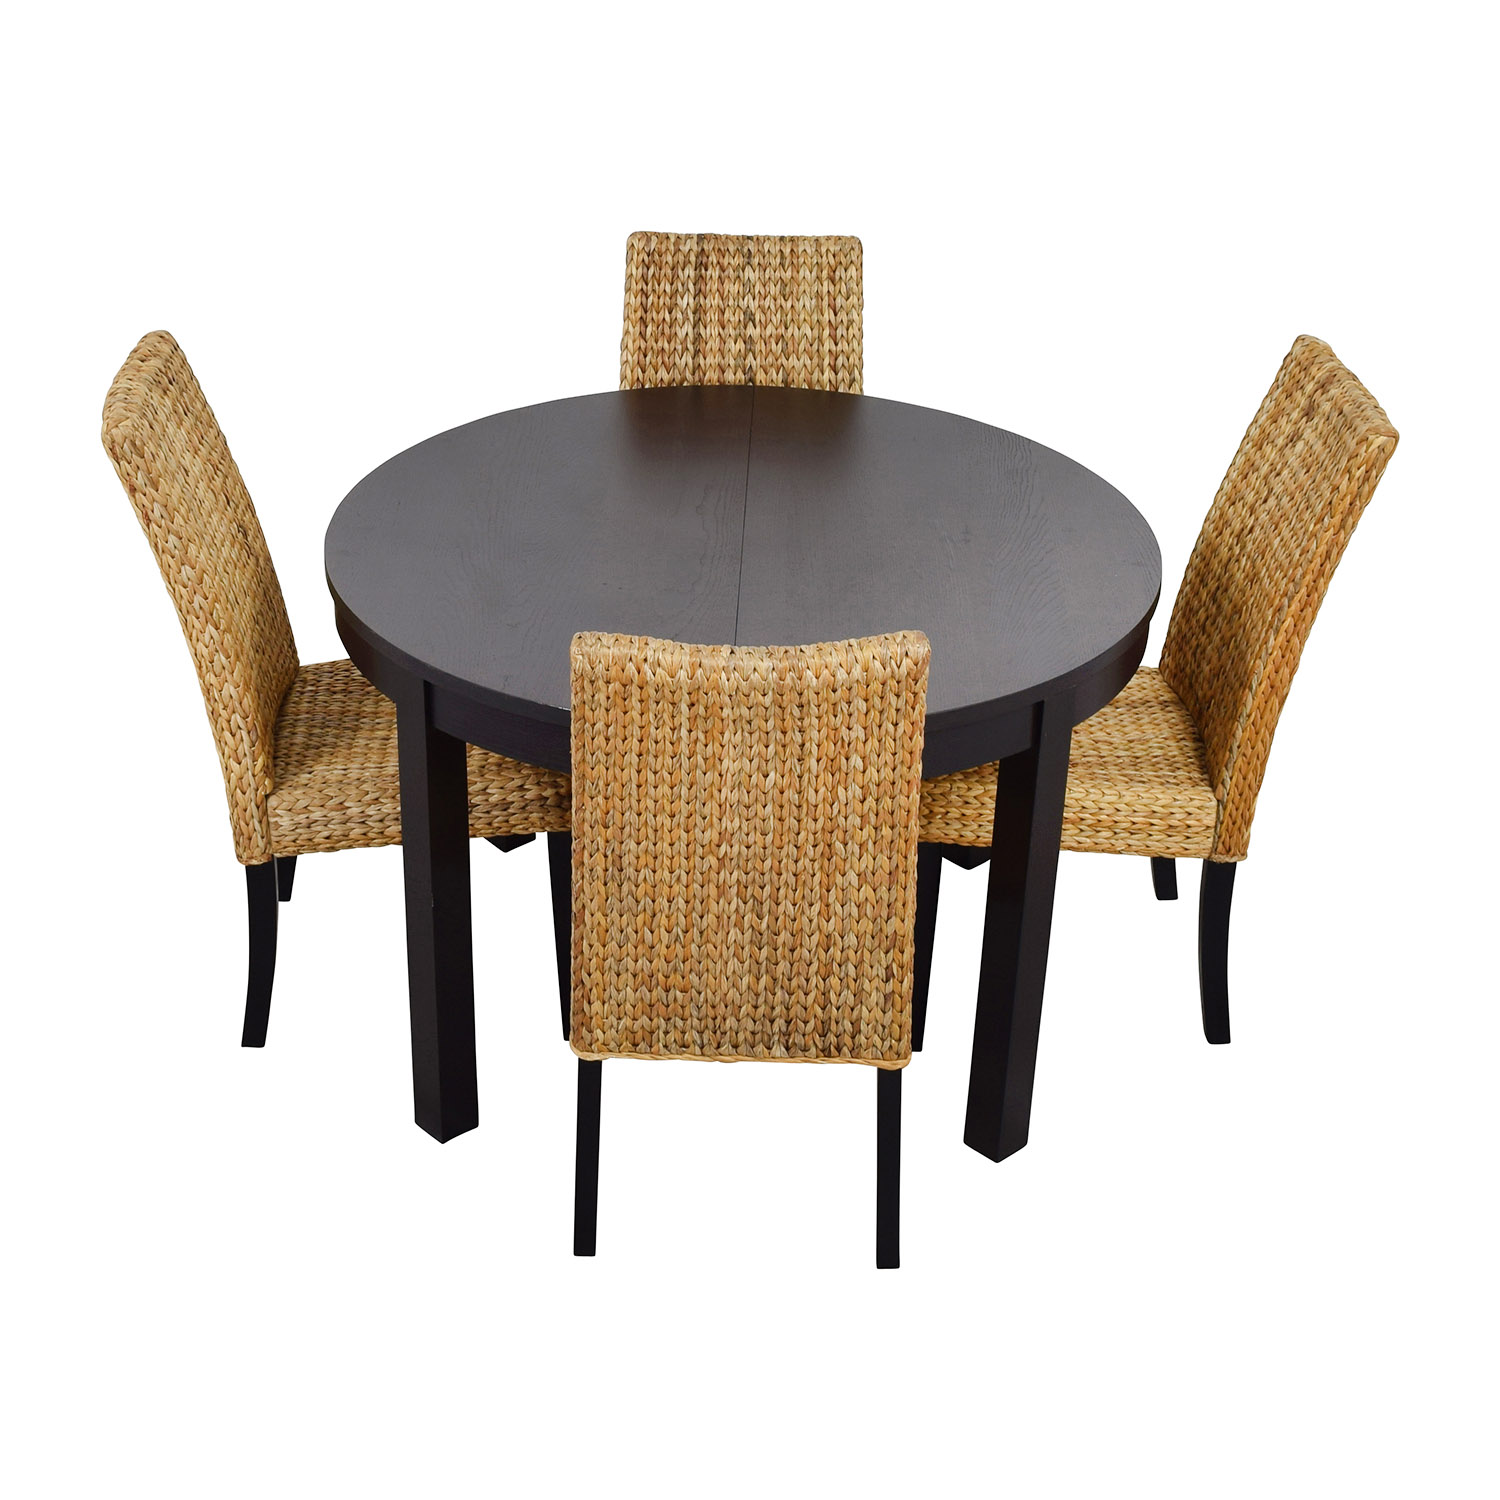 66 off macy 39 s ikea round black dining table set with